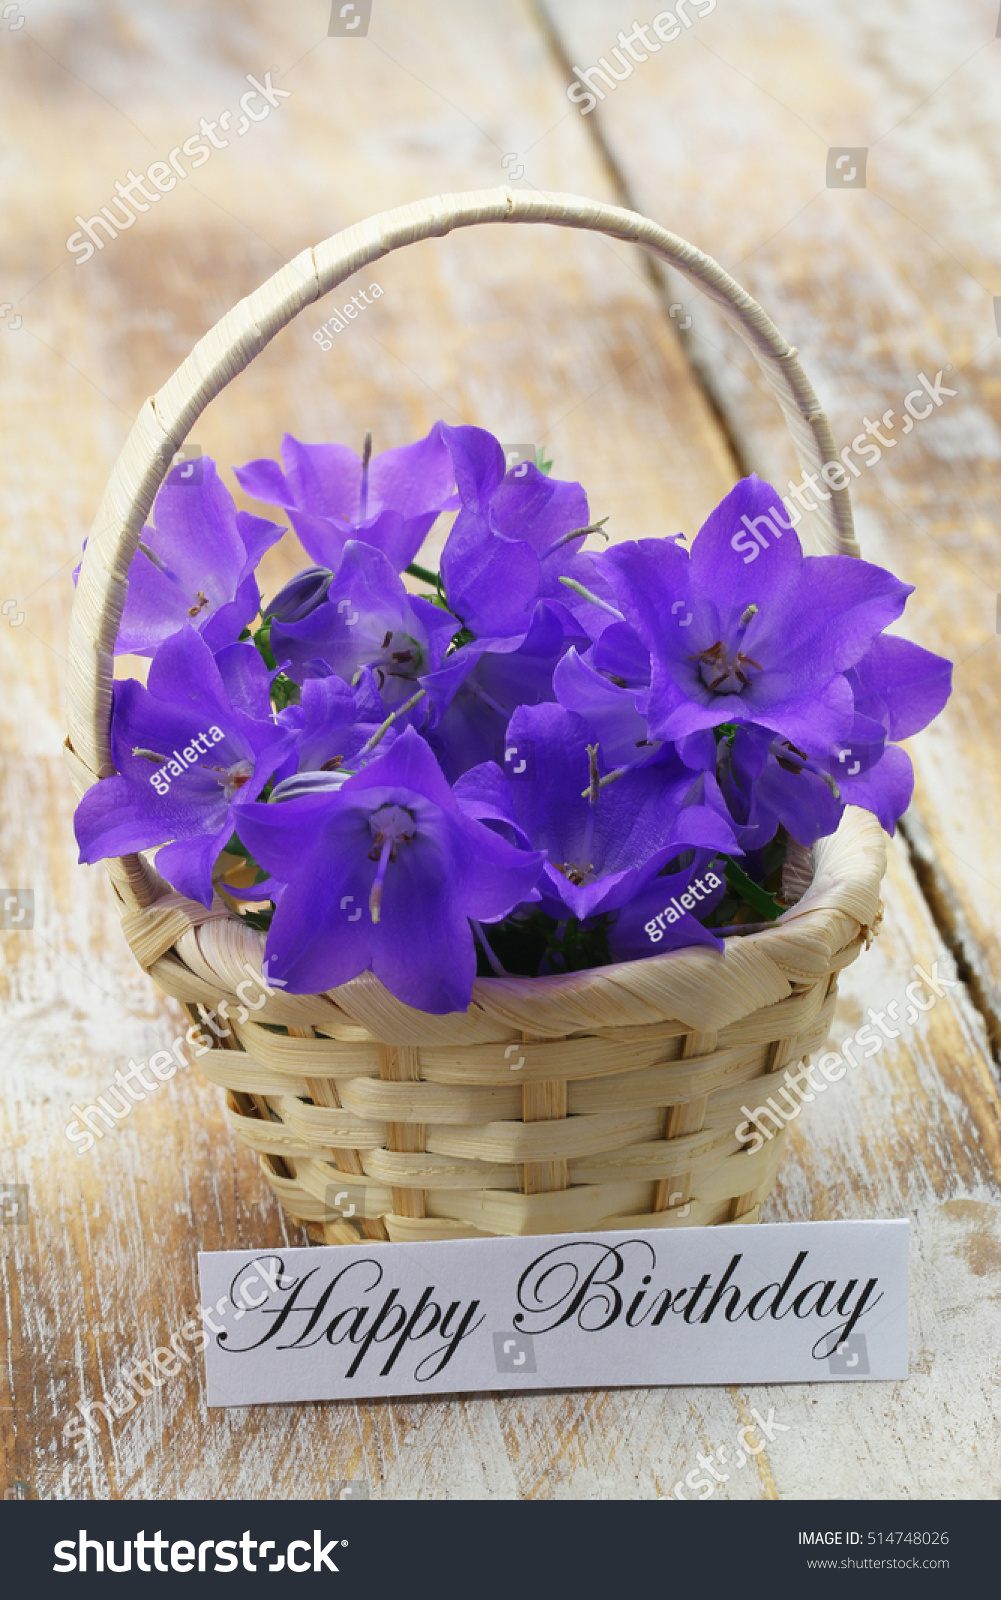 Happy birthday card wicker basket filled stock photo 514748026 happy birthday card with wicker basket filled with purple campanula bell flowers on rustic wooden surface dhlflorist Gallery